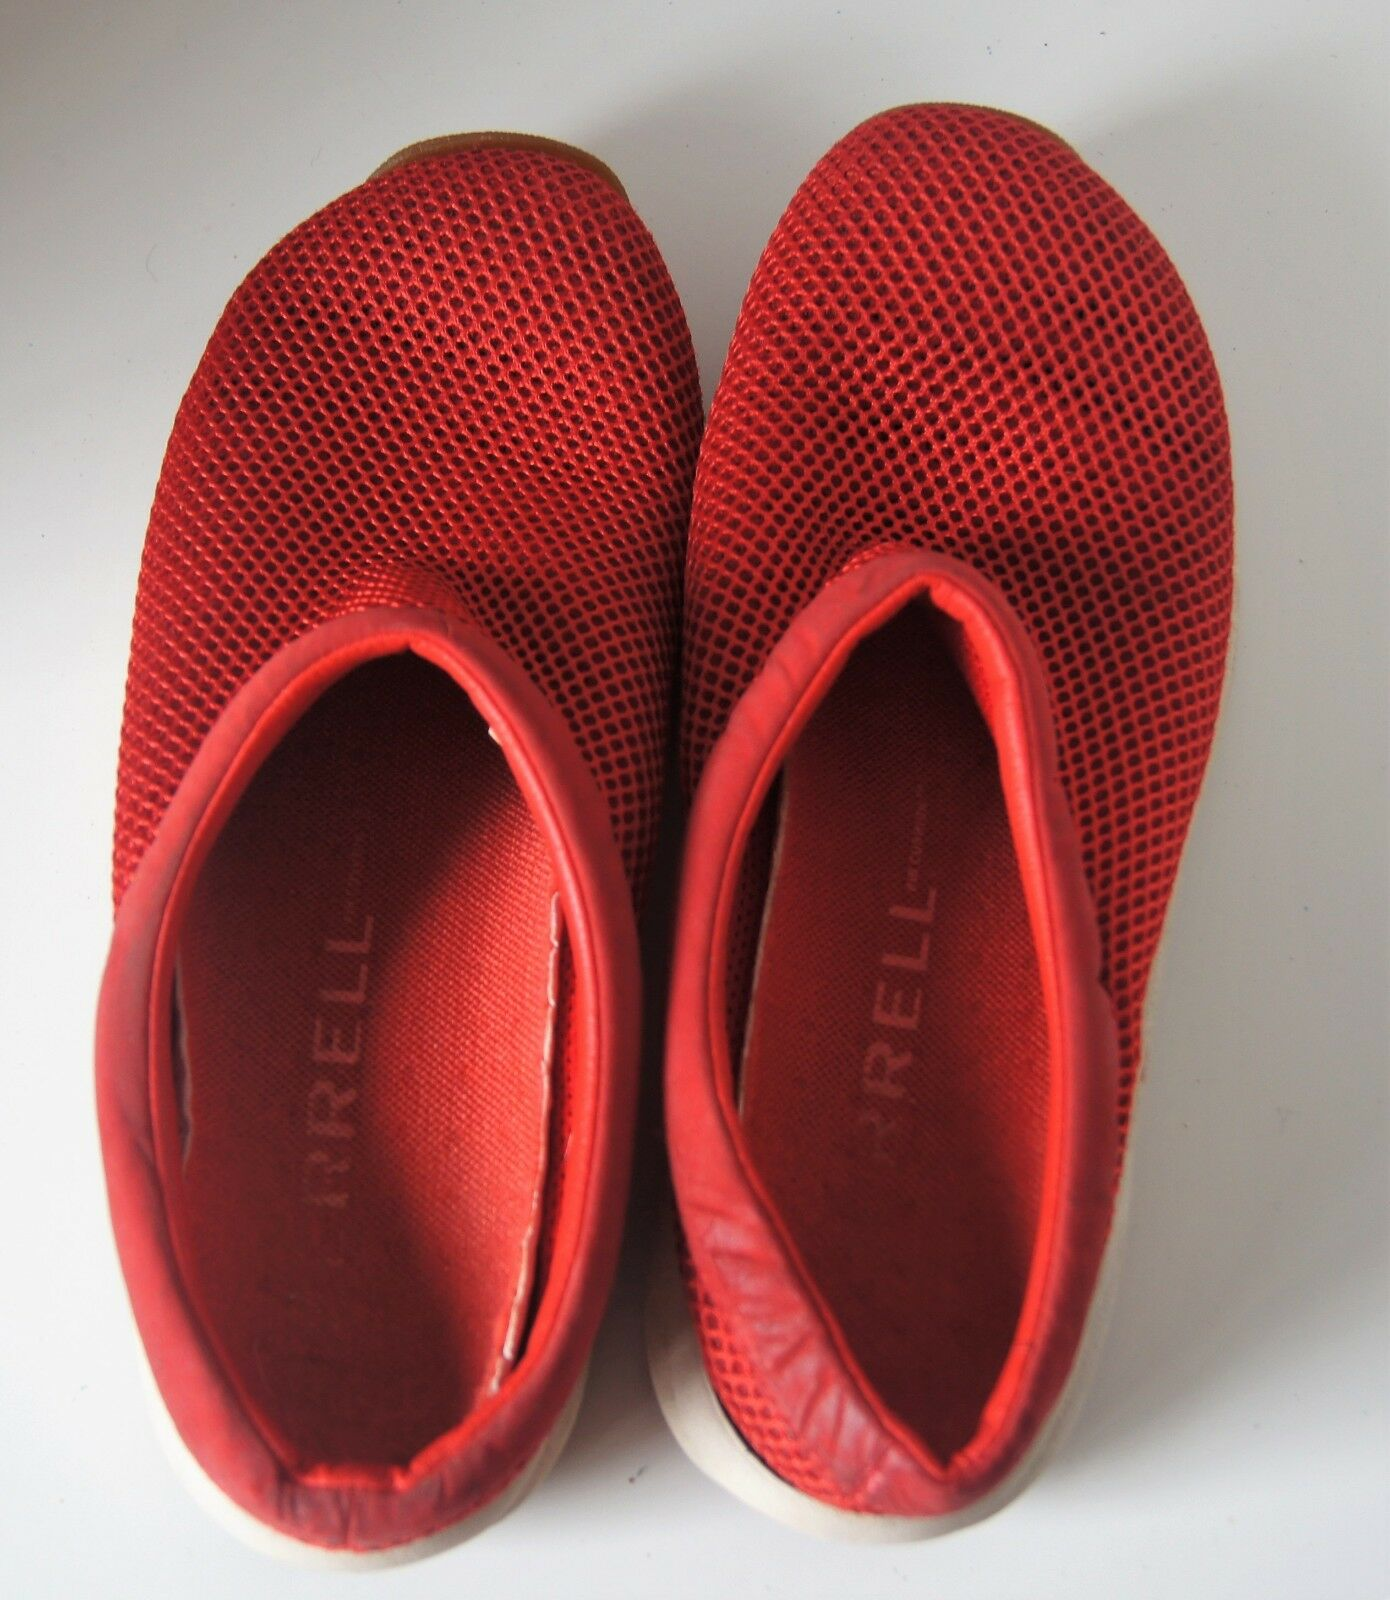 Merrell Red Primo Breeze Air Cushion Red Merrell Clogs Mules Sandals Shoes Women's SIze 8.5 5182d8